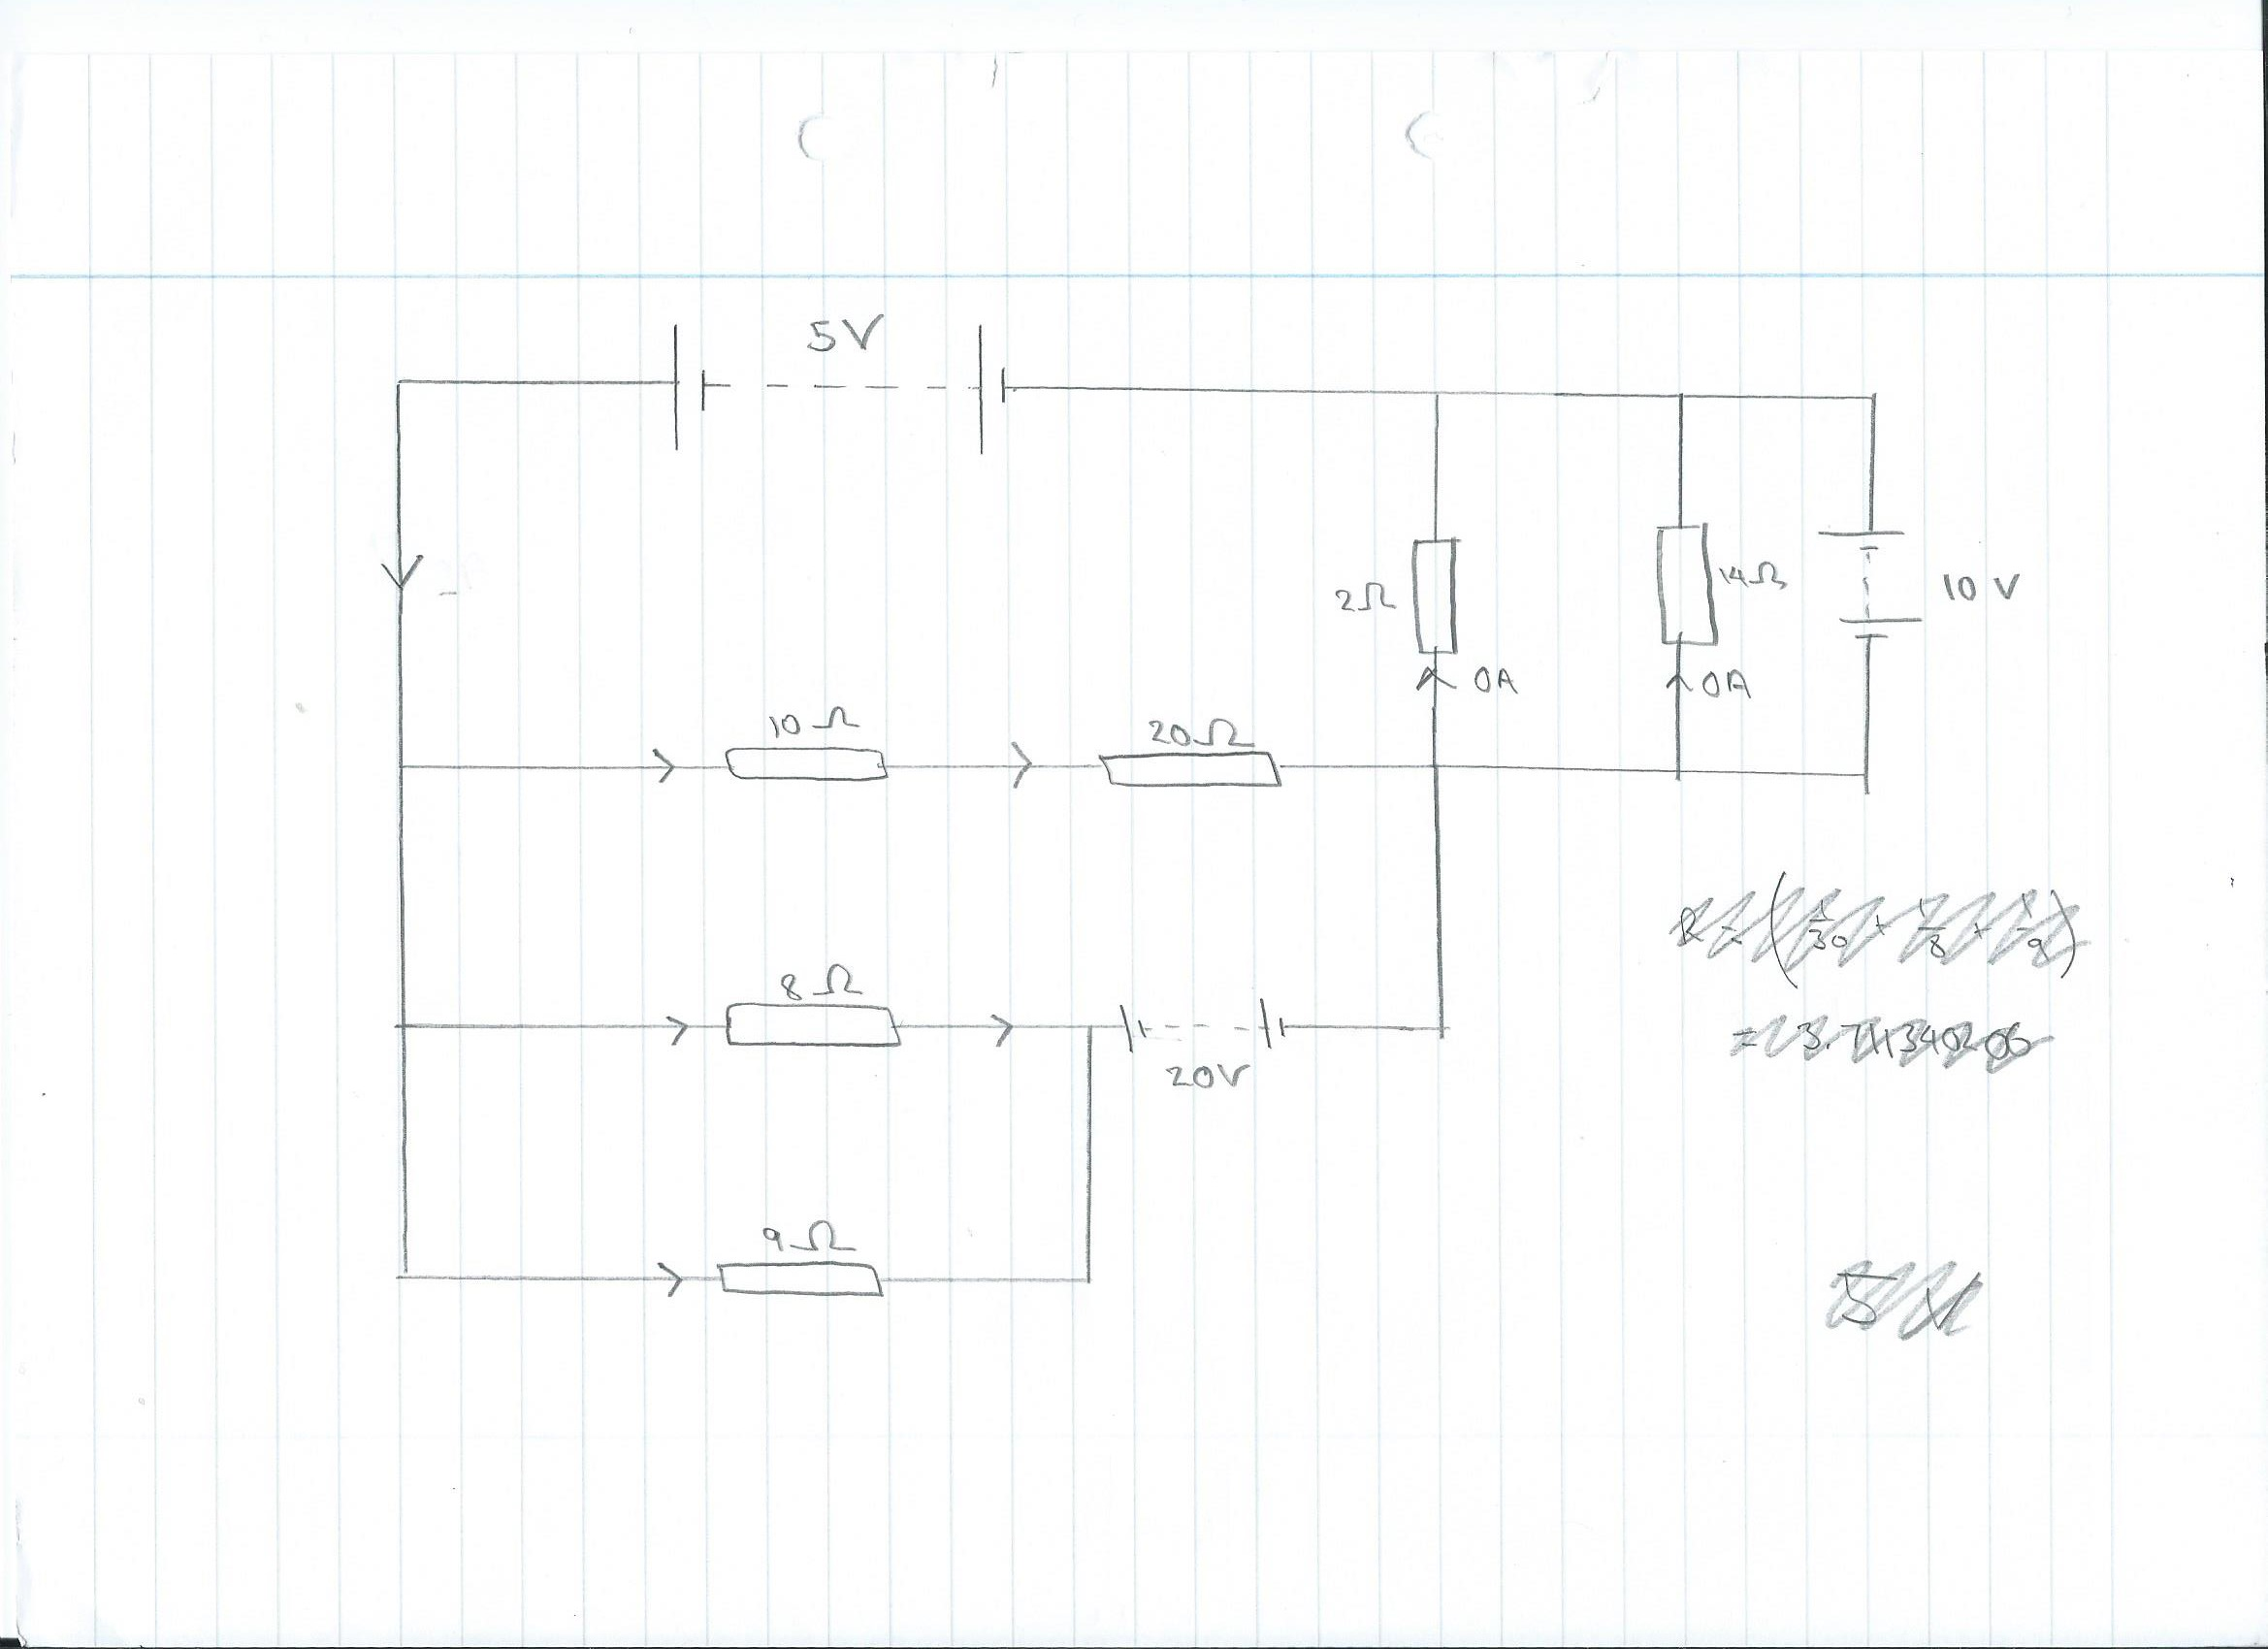 Circuit Diagram Physics   Physics Circuit Diagram The Student Room